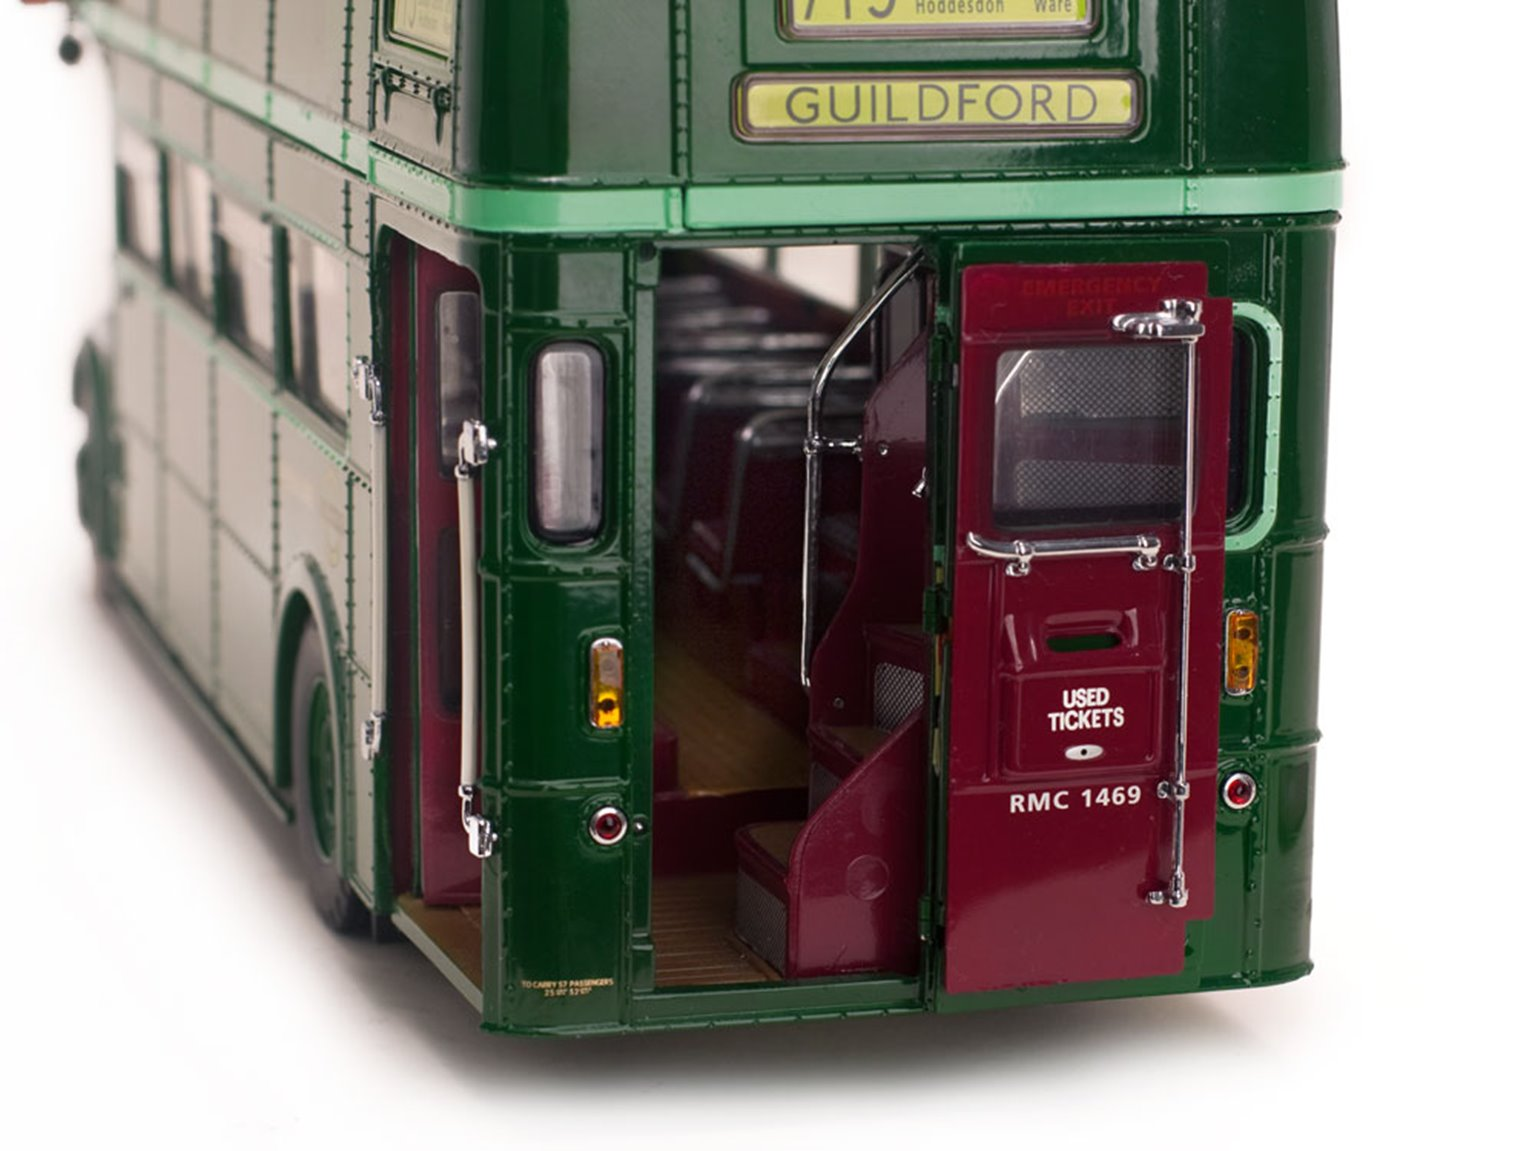 1958 Routemaster Bus RMC 1469 - 469 CLT - London Transport Green Line